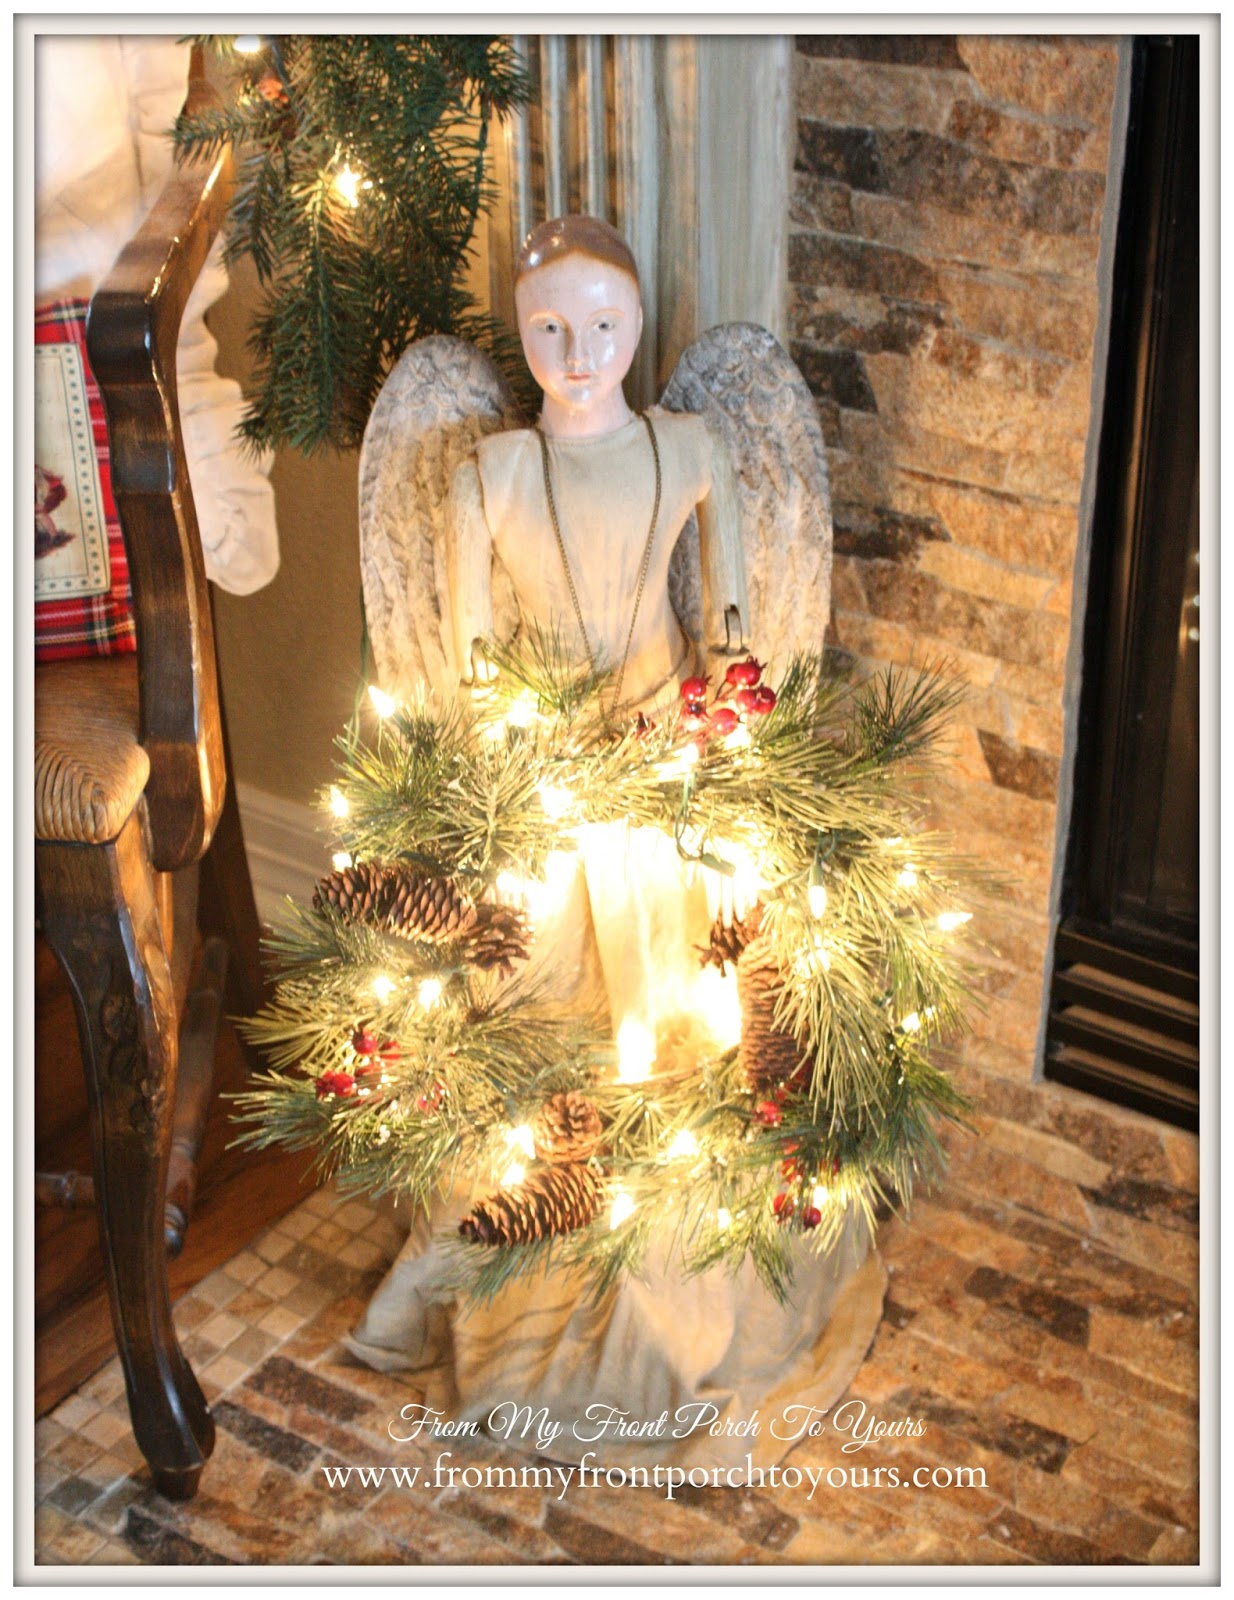 Santos Cage Doll-French Farmhouse Vintage Christmas Mantel- Ballard Designs-From My Front Porch To Yours